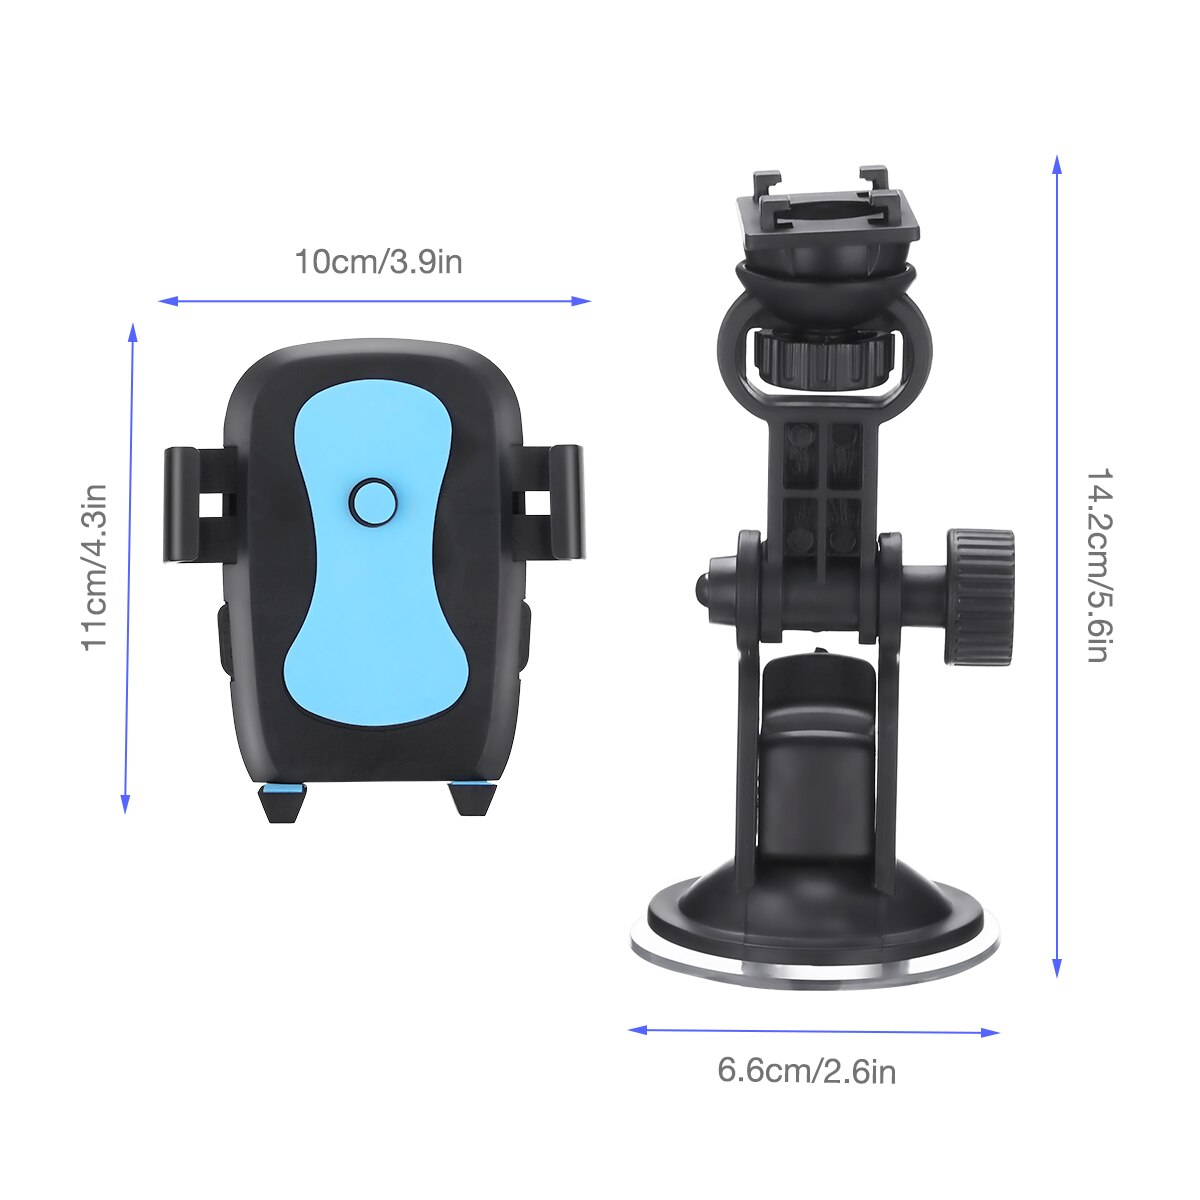 H2d60a305d9704abfbe5200a9d60b04674 - 360 Degree Rotatable Car Phone Holder For 2.4 to 3.4inch Phone Mount Stand in Car Bracket For Poco x3 pro iPhone Xiaomi Samsung